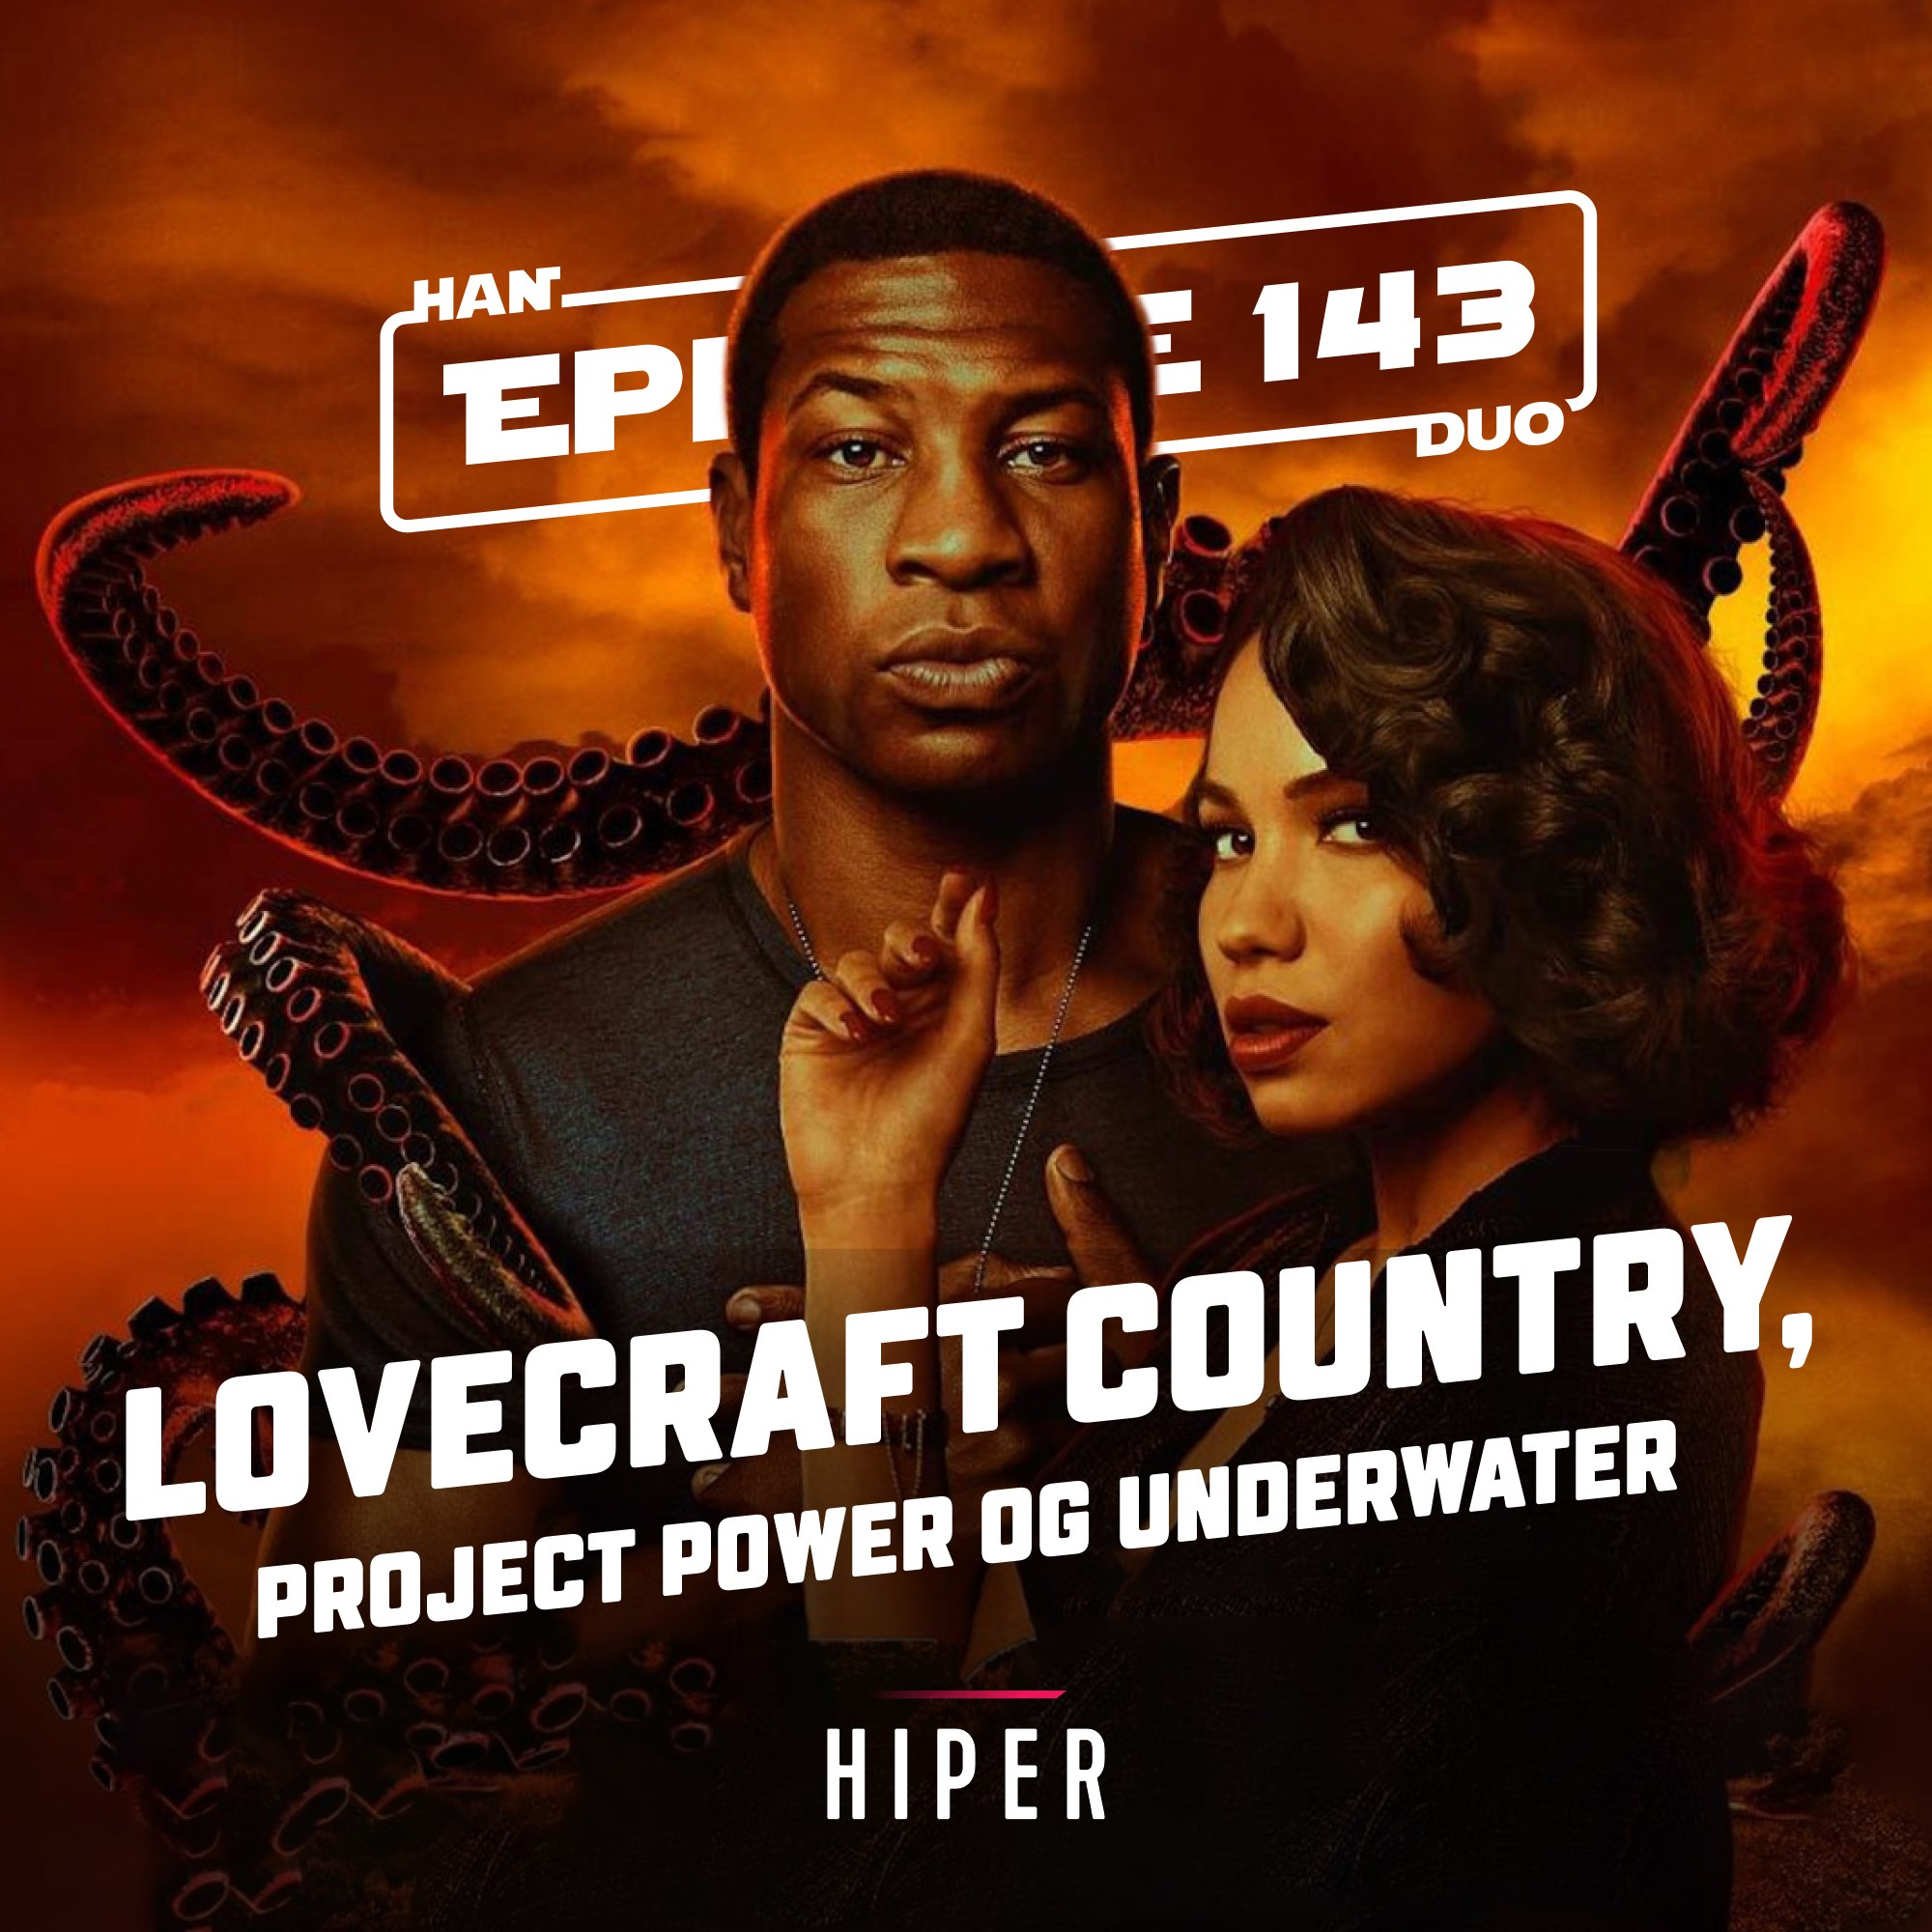 Han Duo #143: Lovecraft Country, Project Power, Underwater